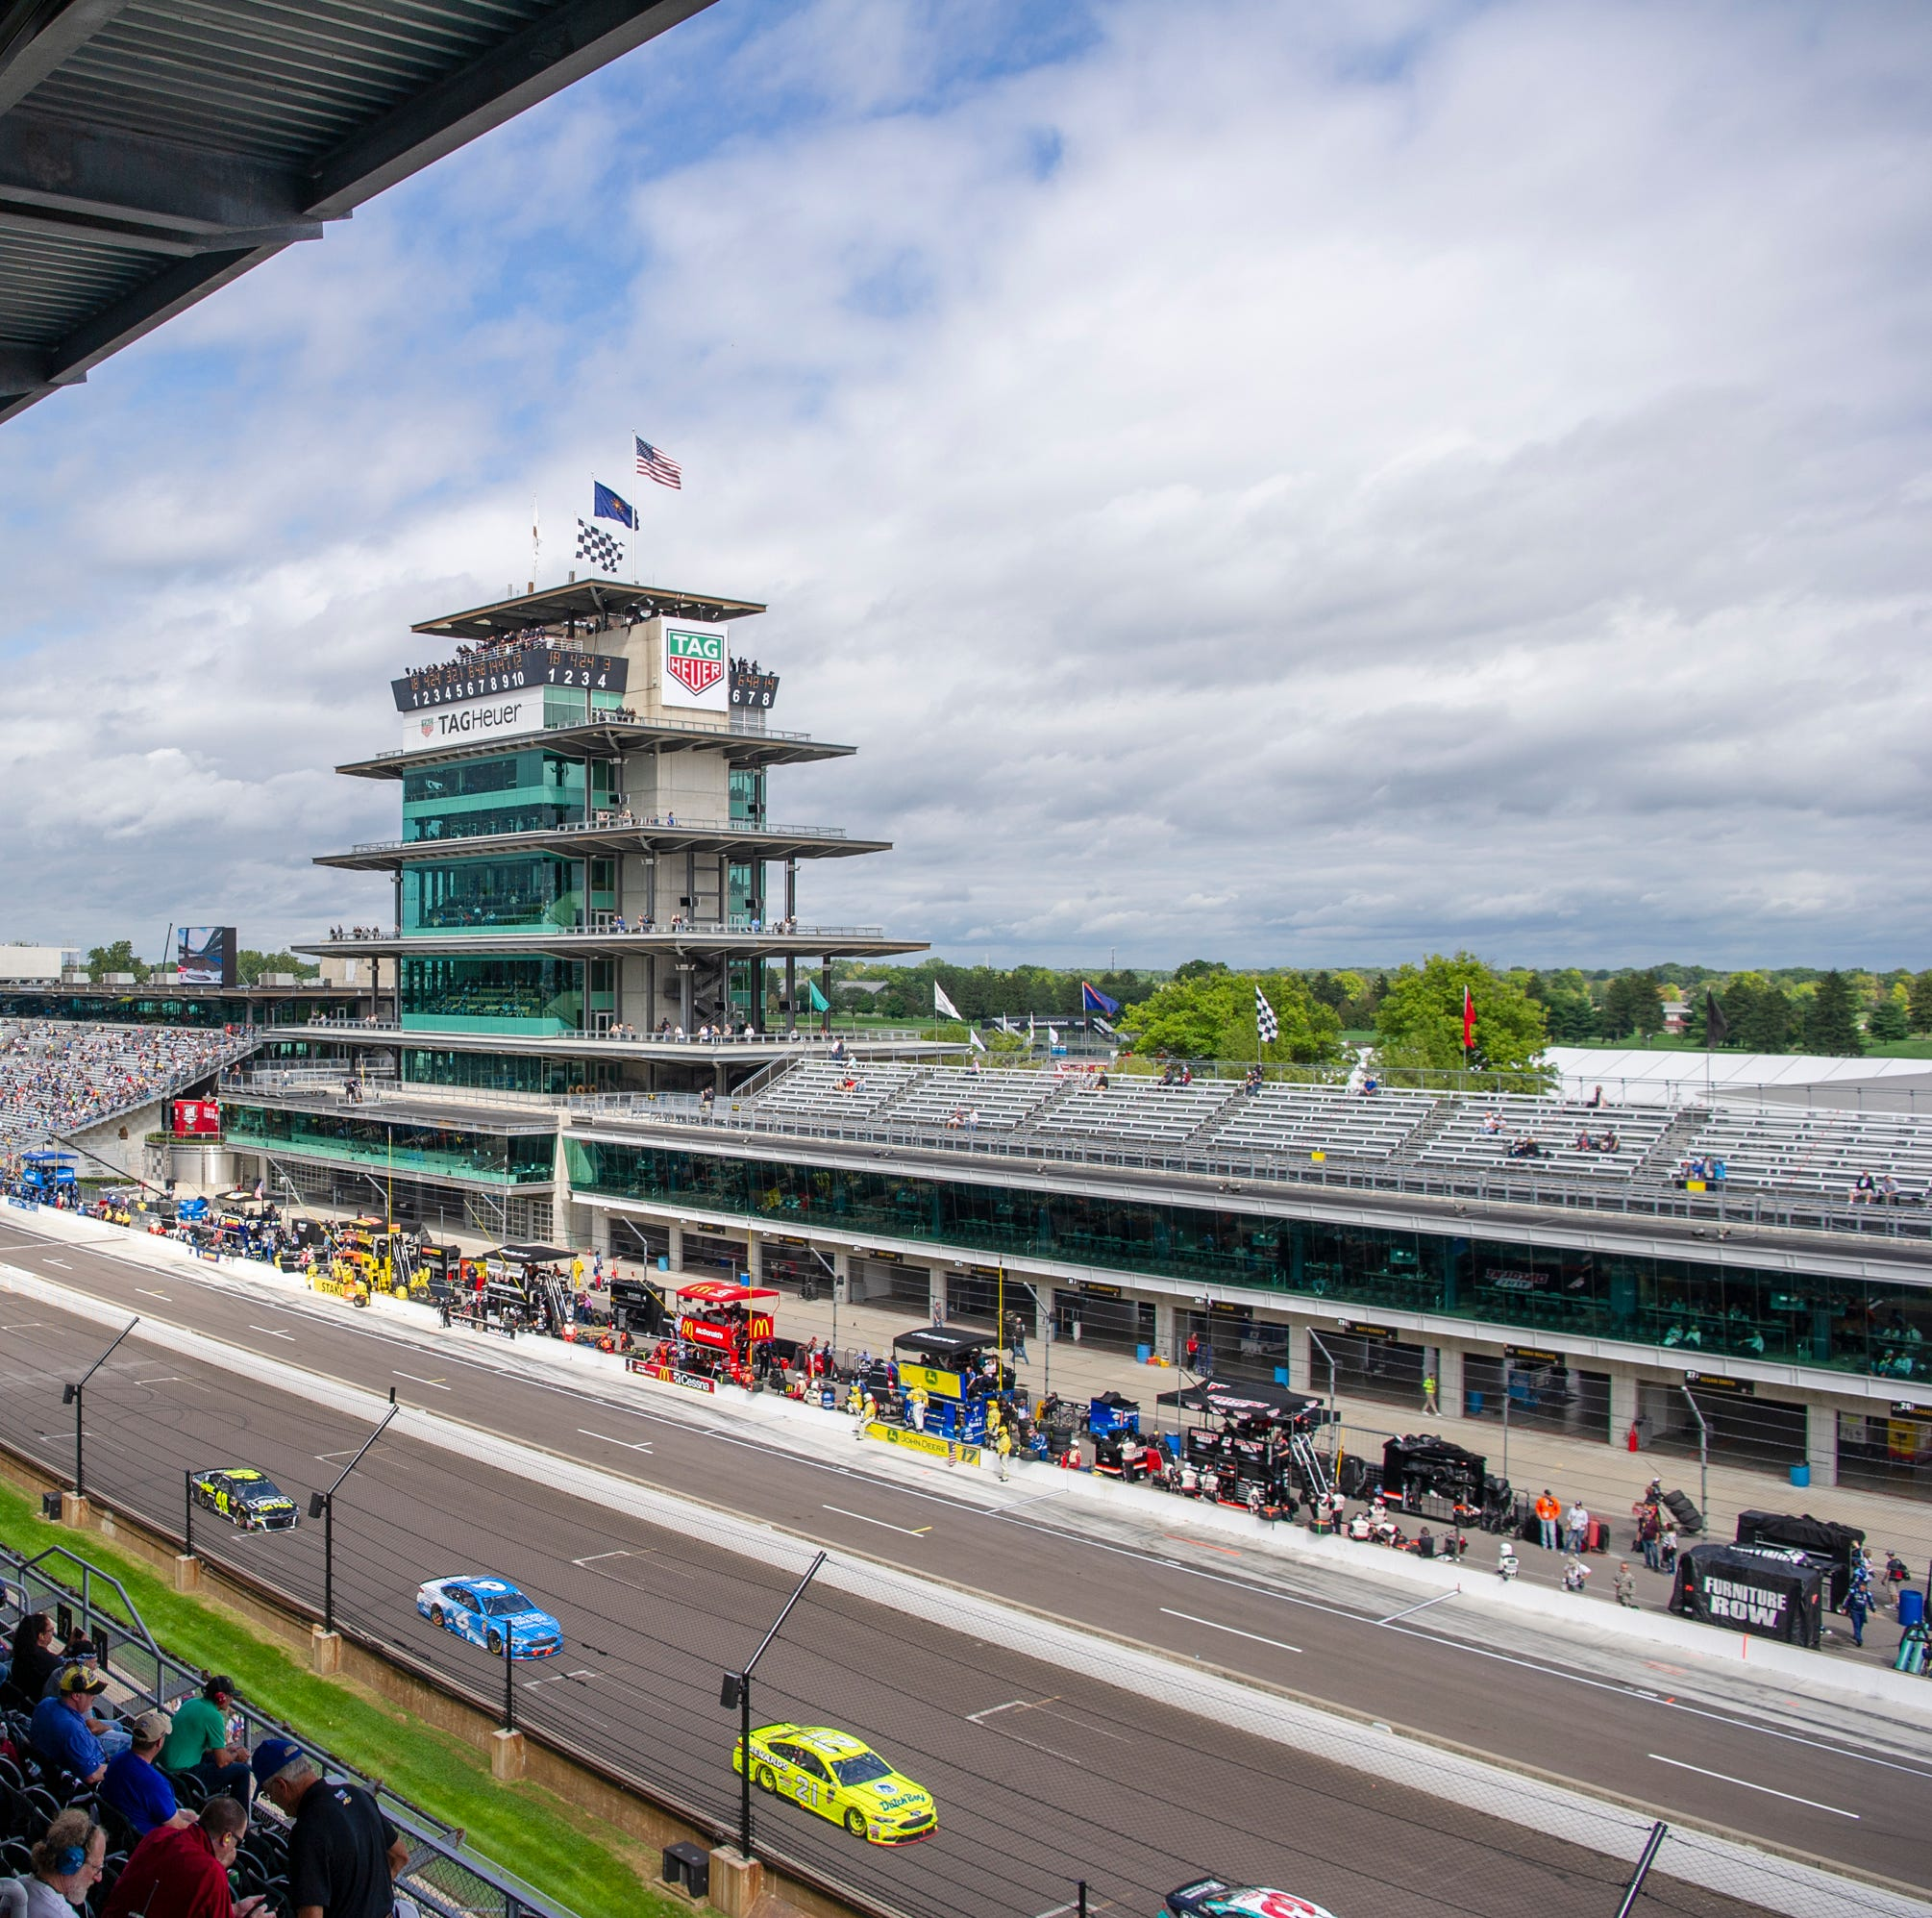 Fast Friday crowd at IMS is largest in years, says Doug Boles